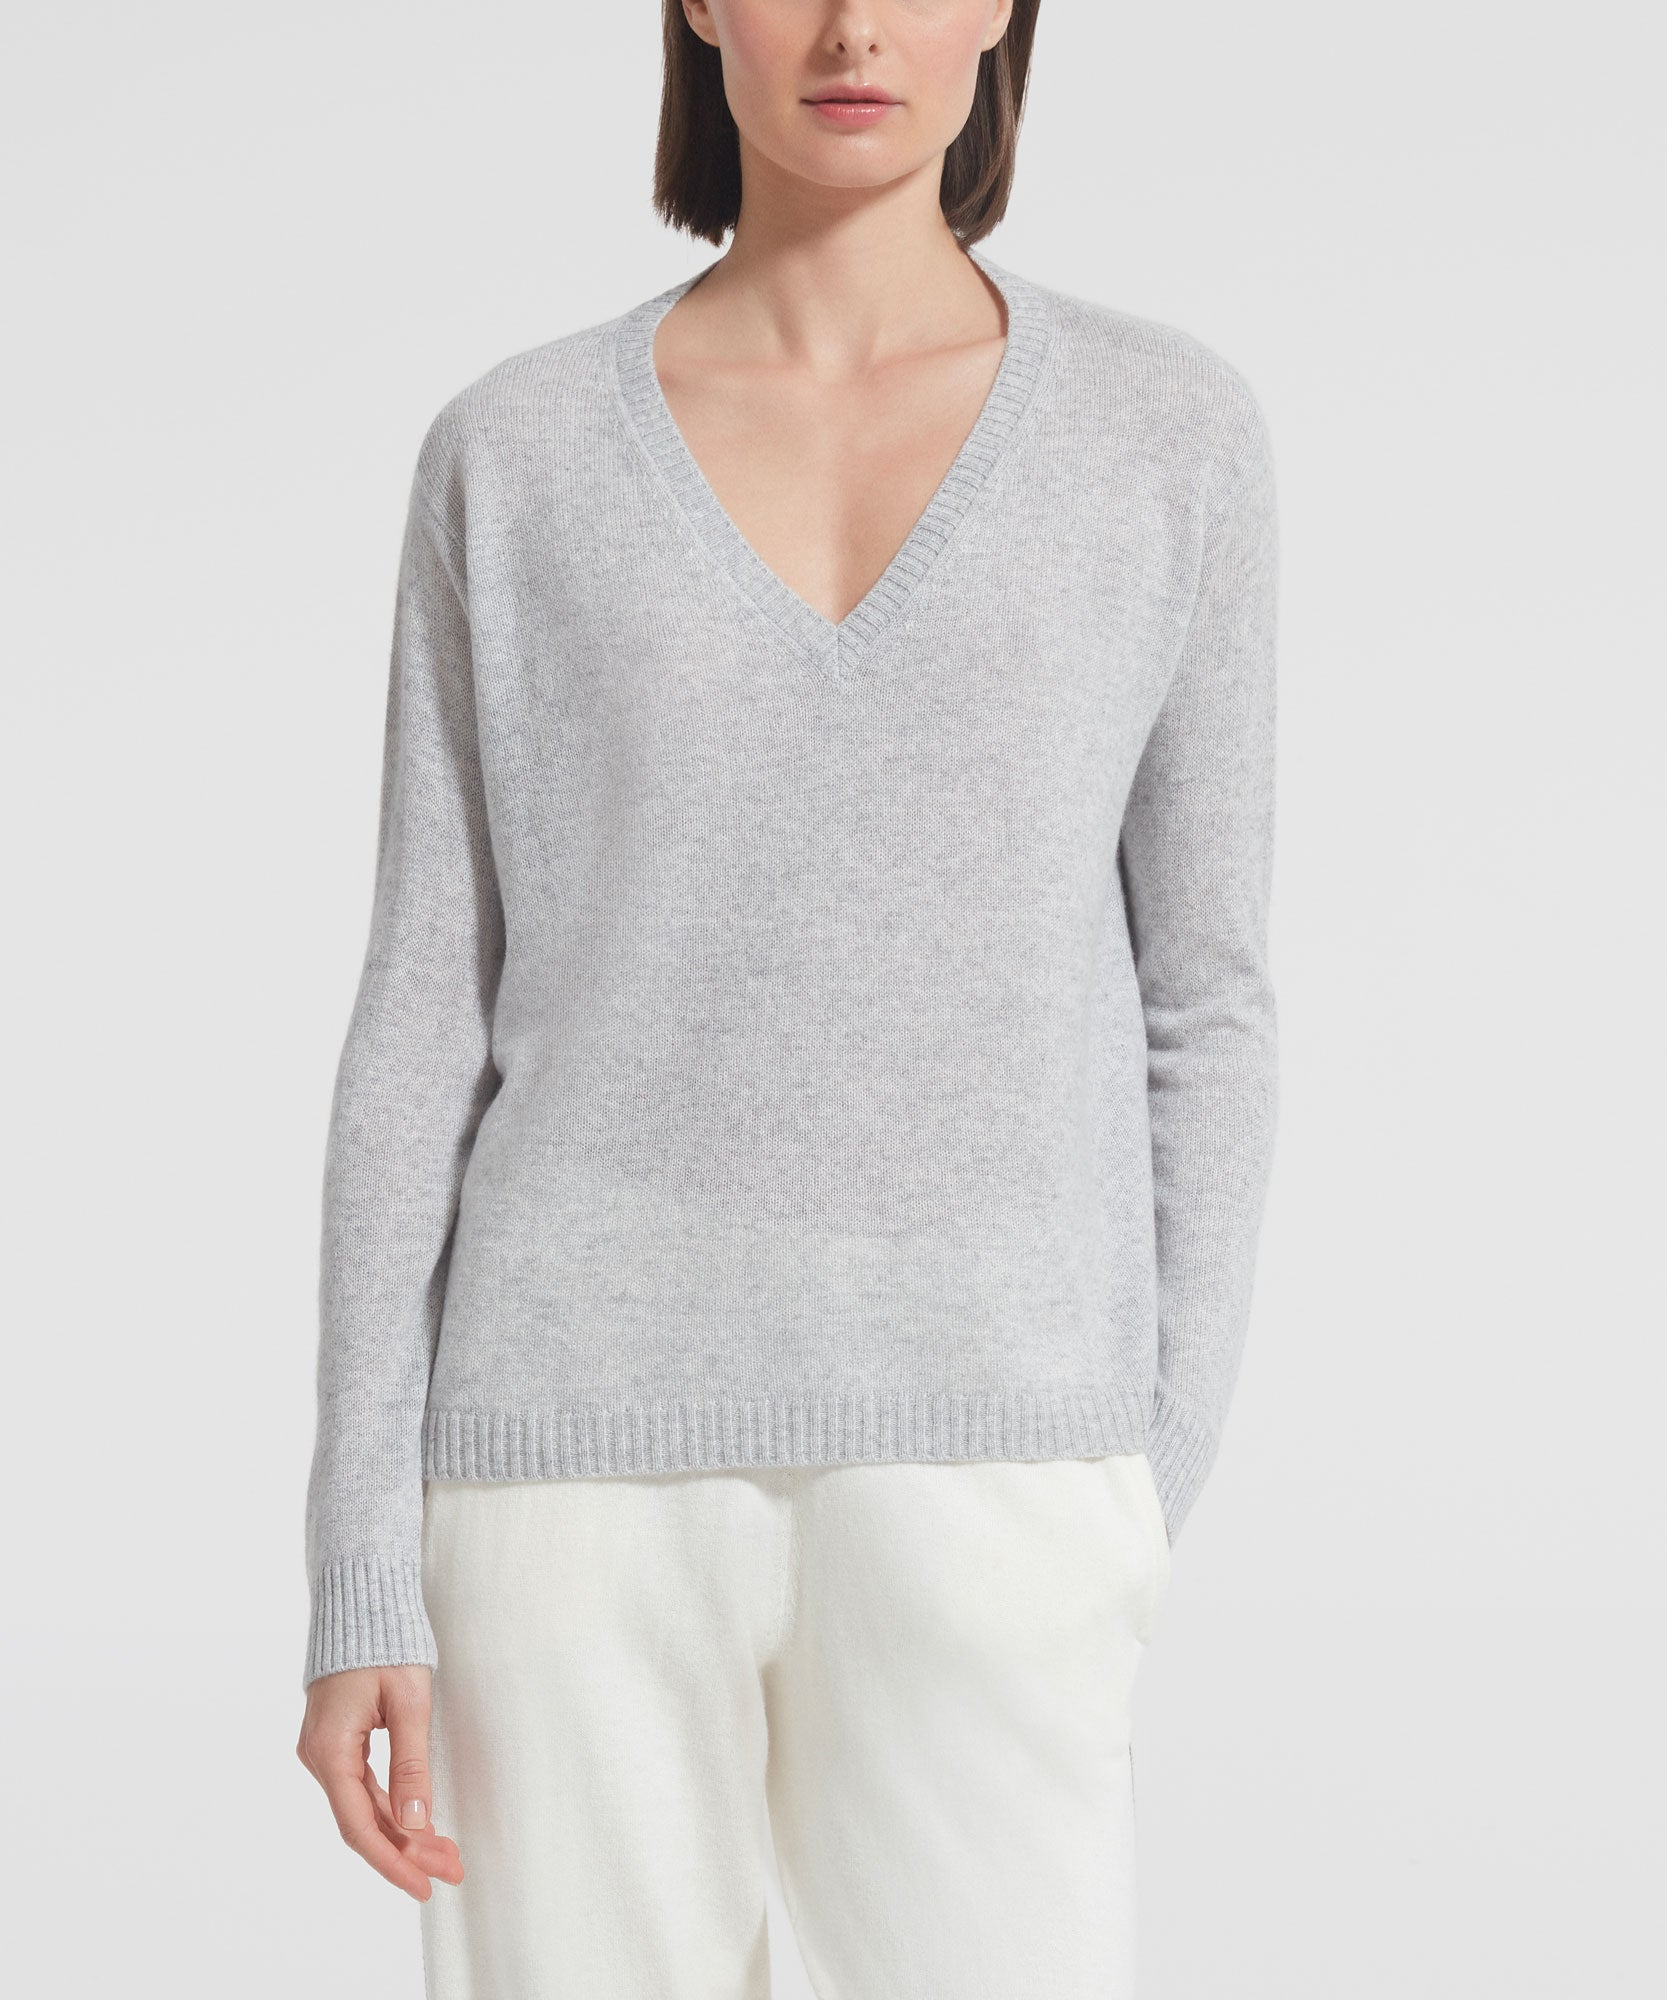 Foggy Cashmere V-Neck Sweater - Women's Luxe Sweater by ATM Anthony Thomas Melillo